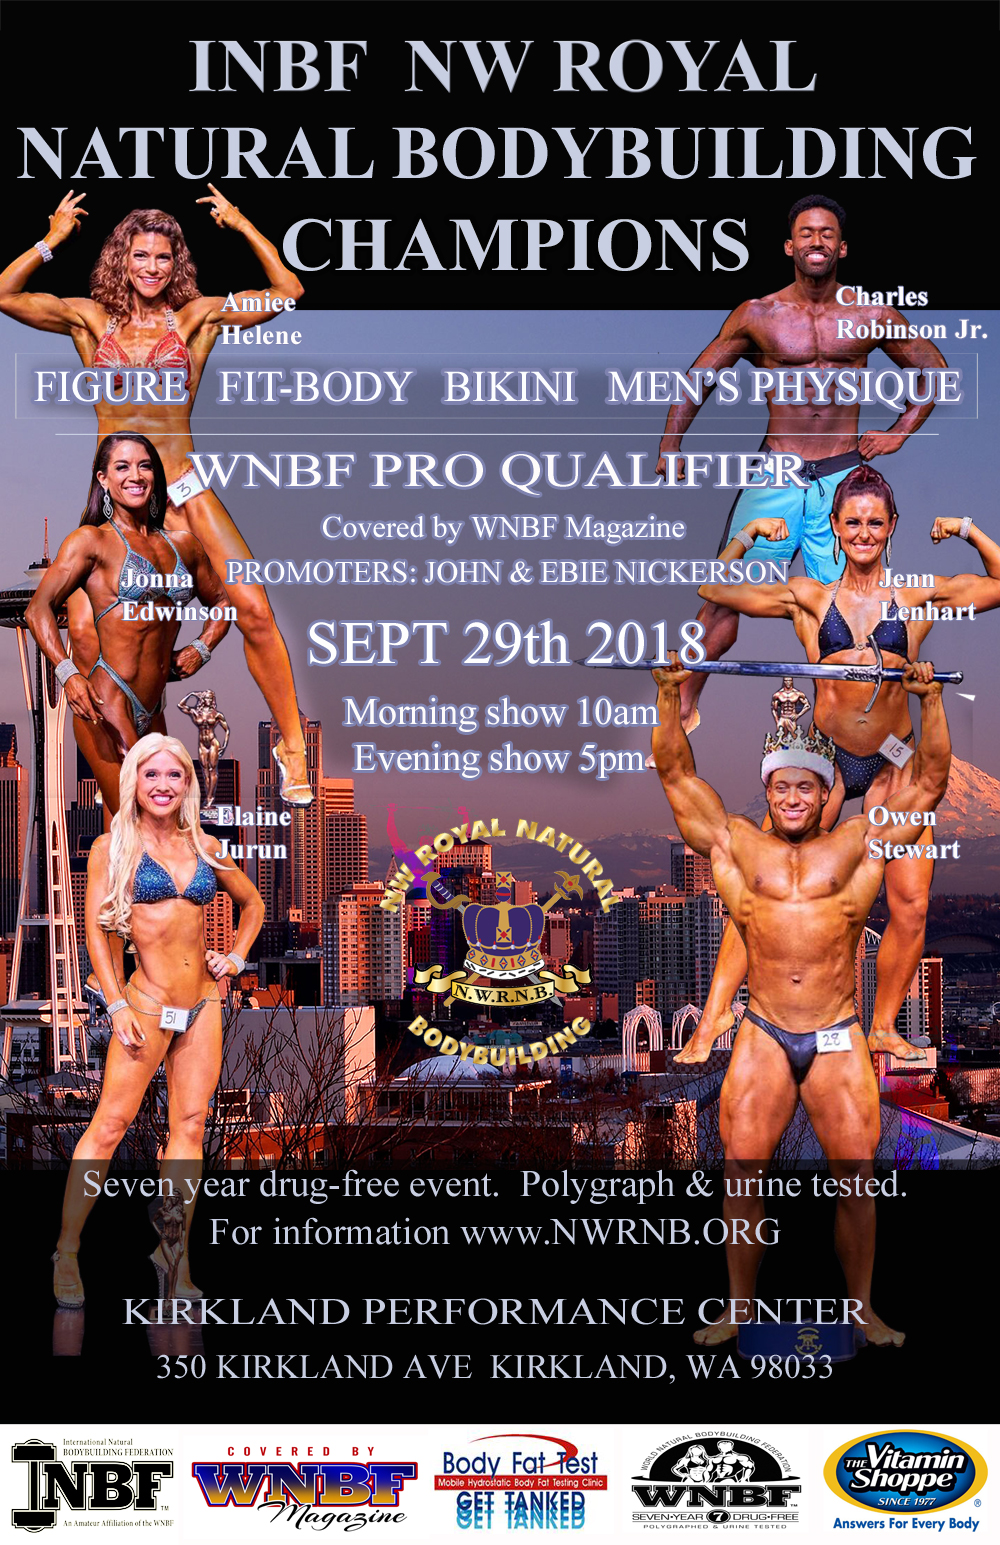 2018 INBF Northwest Royal Natural WNBF Pro Qualifier Kirkland Washington promoted by John and Ebie Nickerson